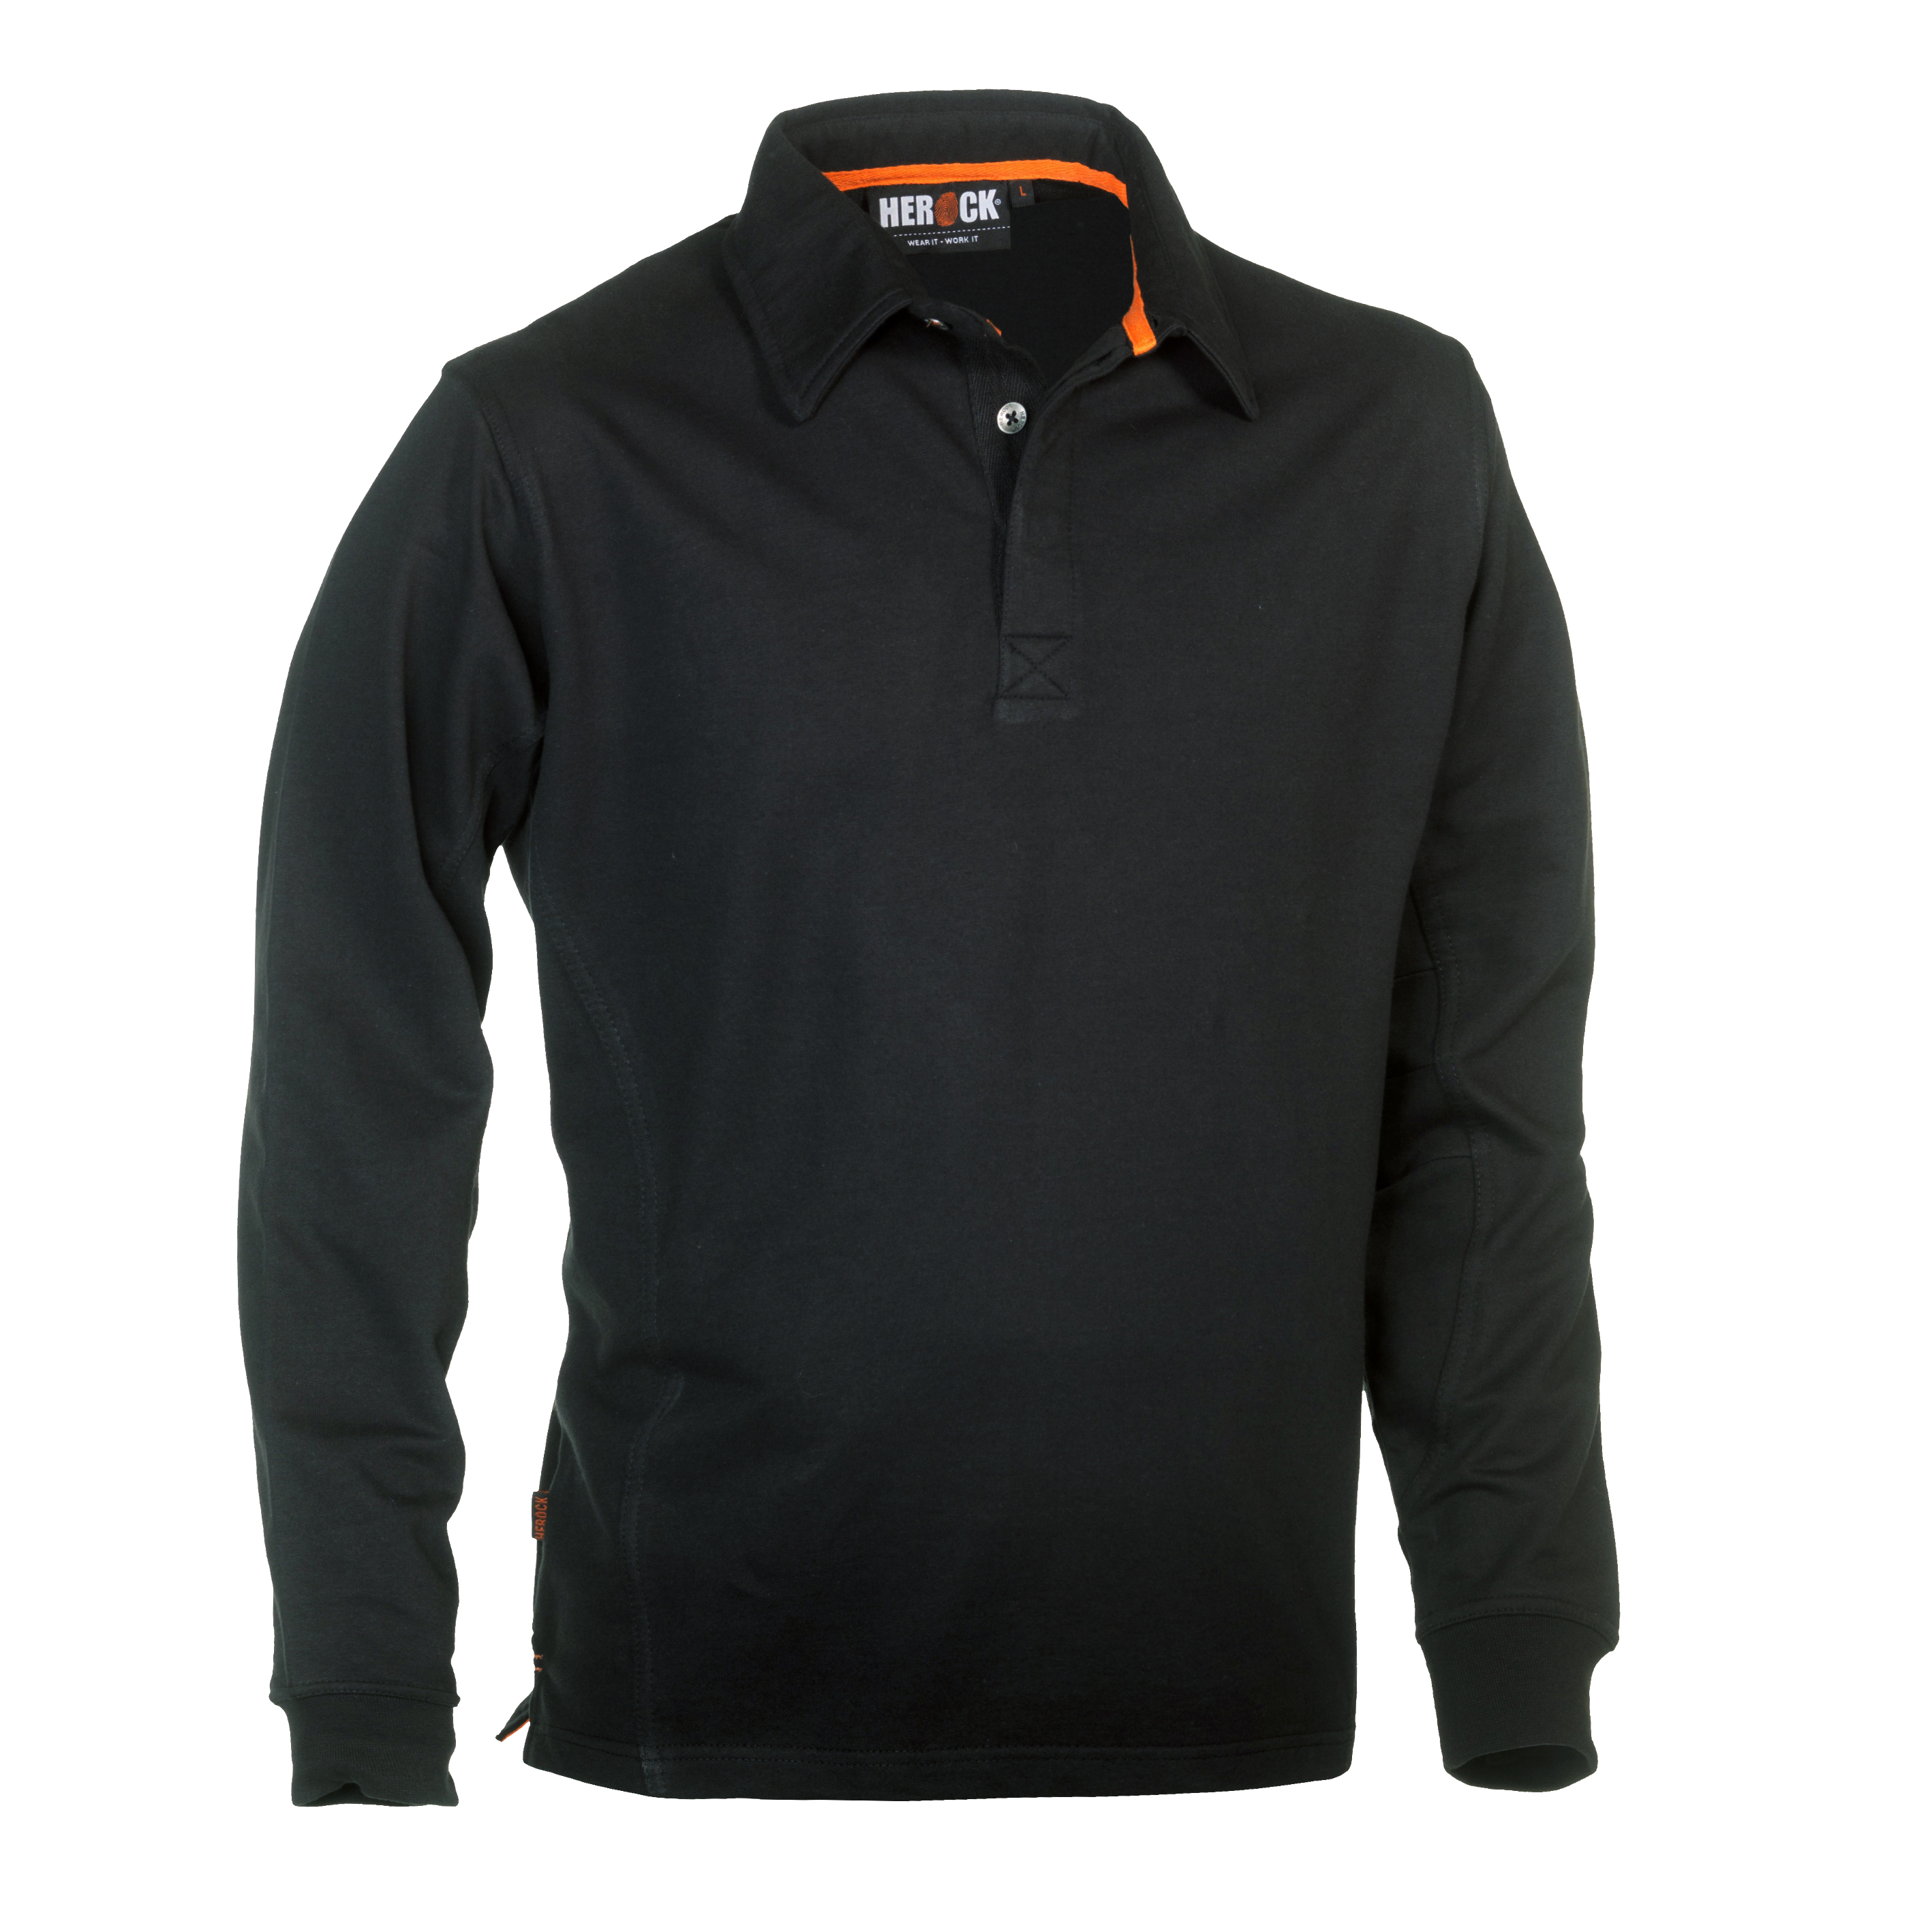 Herock Troja Polo Long Sleeves Zwart L